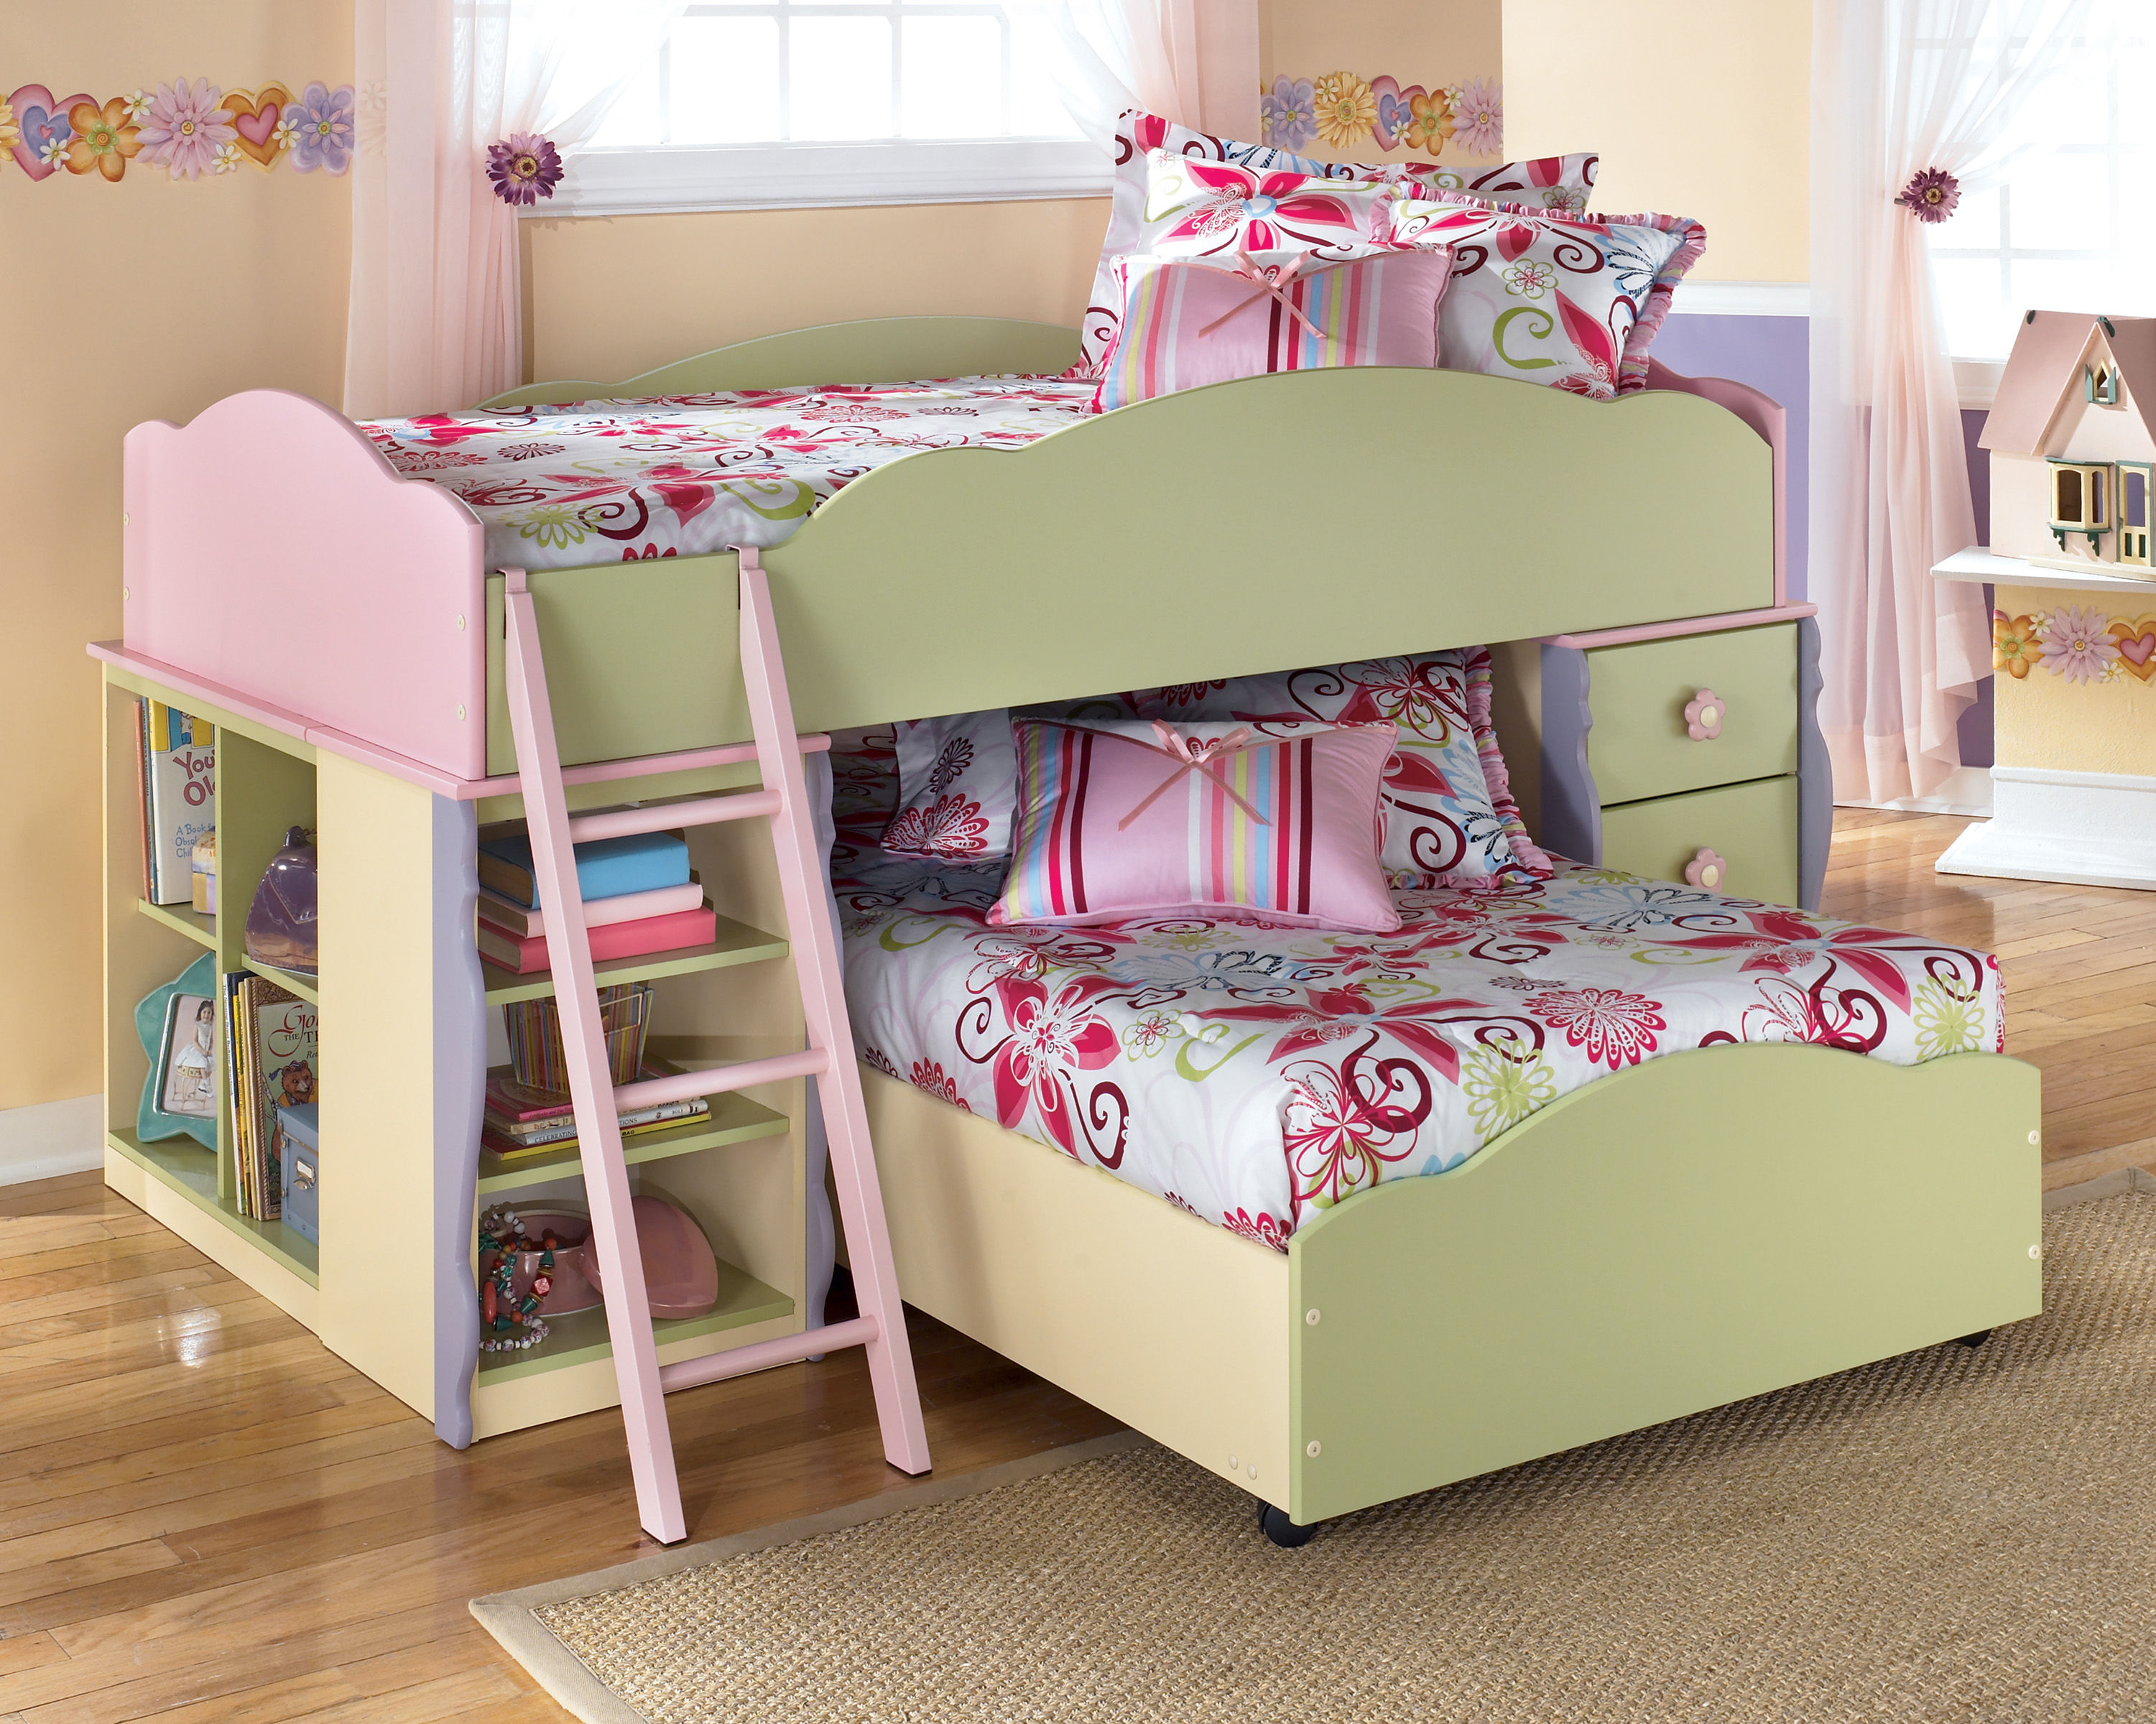 Doll House Youth Doll House Loft Bed W/Bottom Bed | The Classy Home